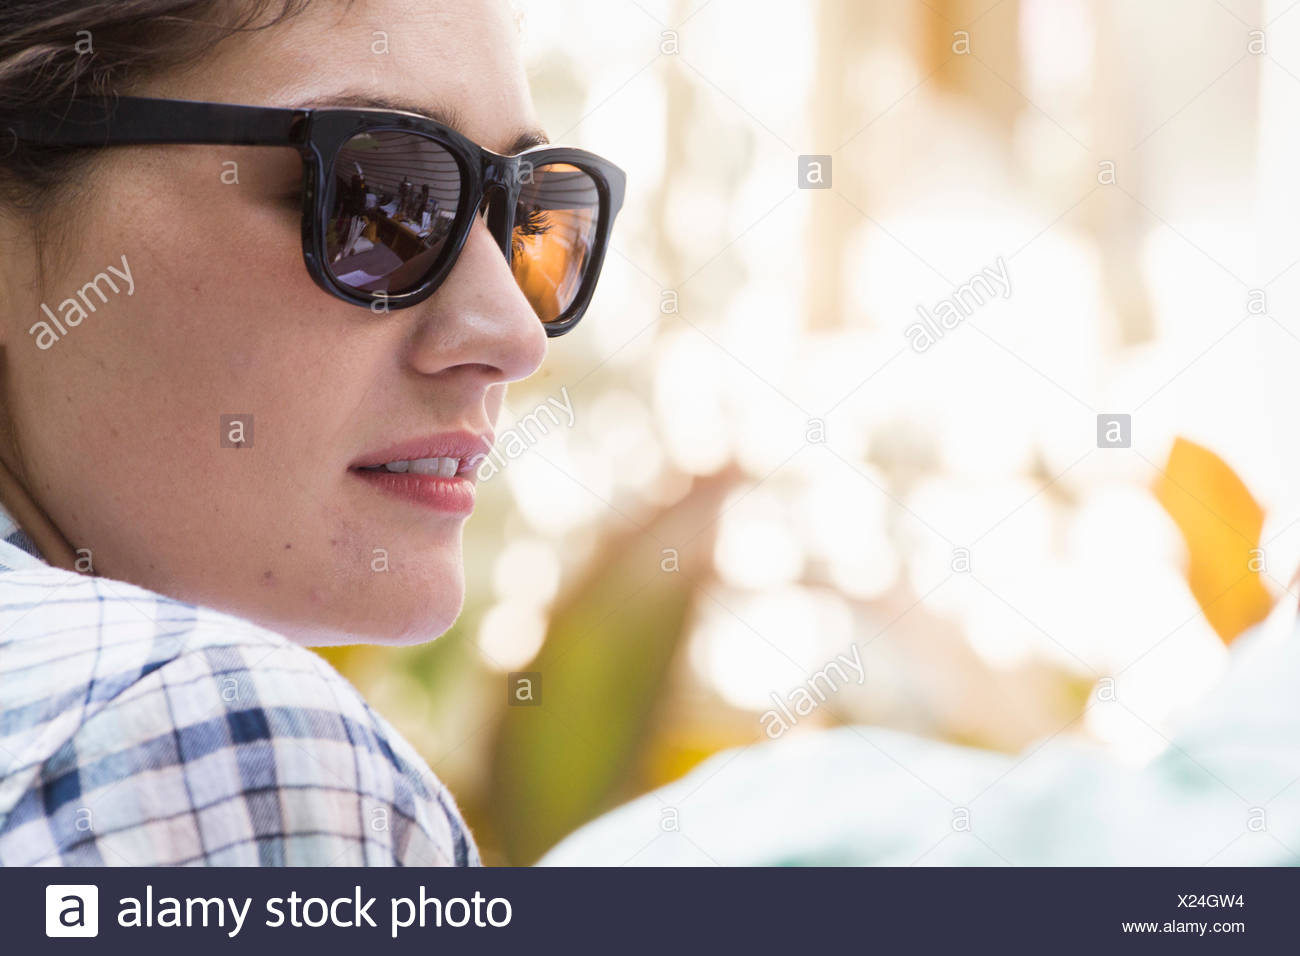 A young woman wearing sunglasses turning towards a man. - Stock Image